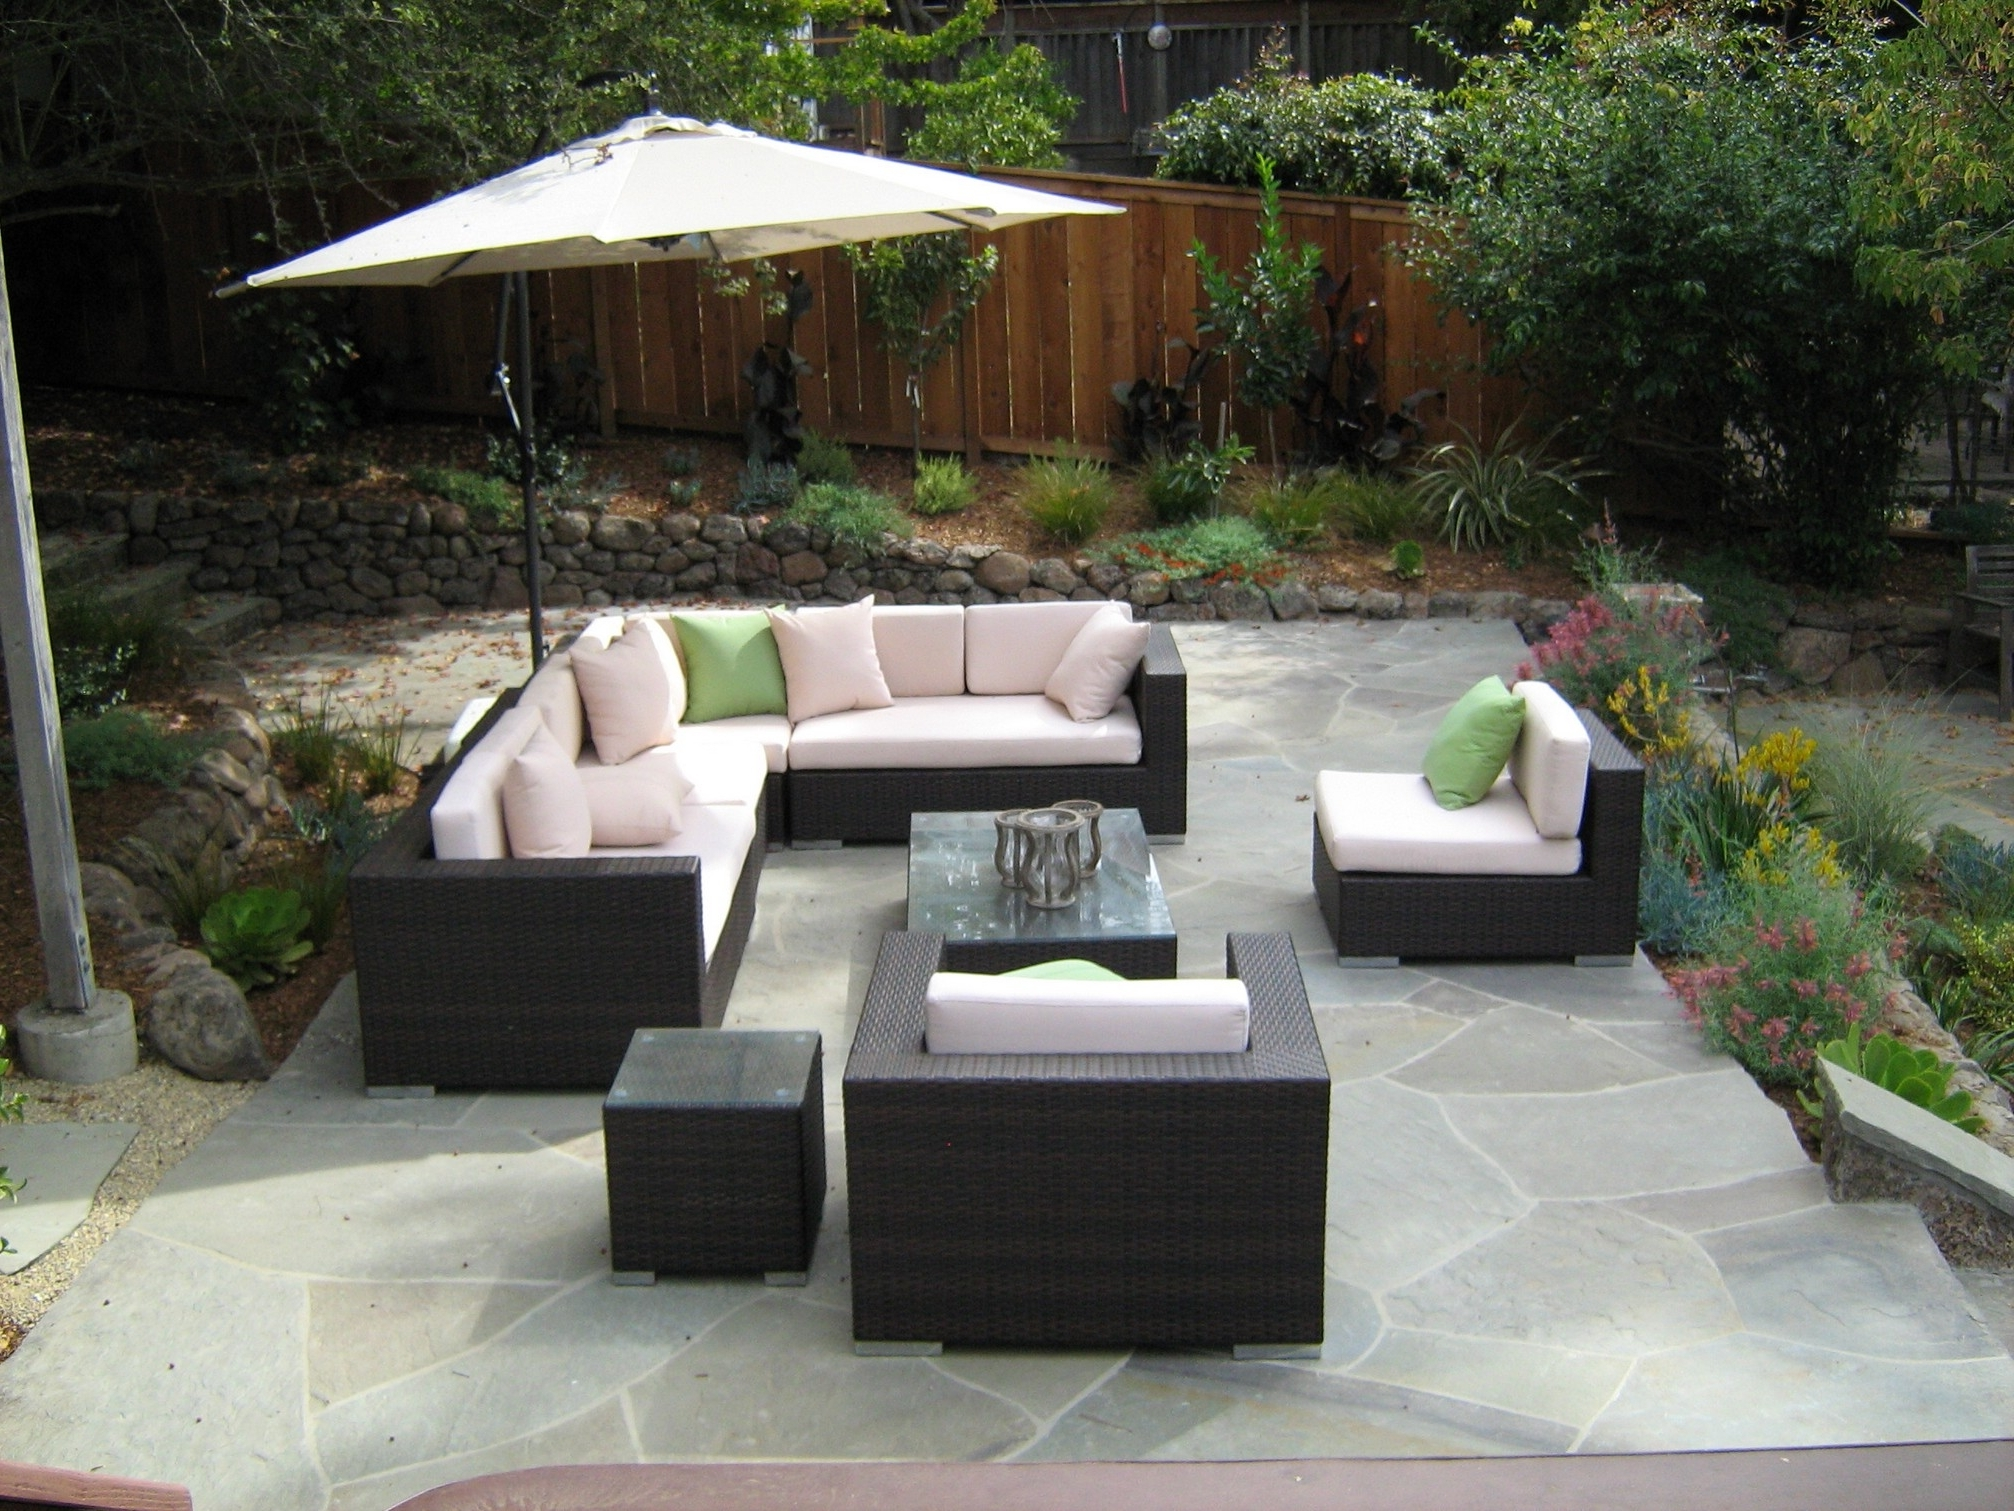 Amazing Large Patio Table Patio Furniture Top Rated Large And Inside Most Recently Released Expensive Patio Umbrellas (View 2 of 20)